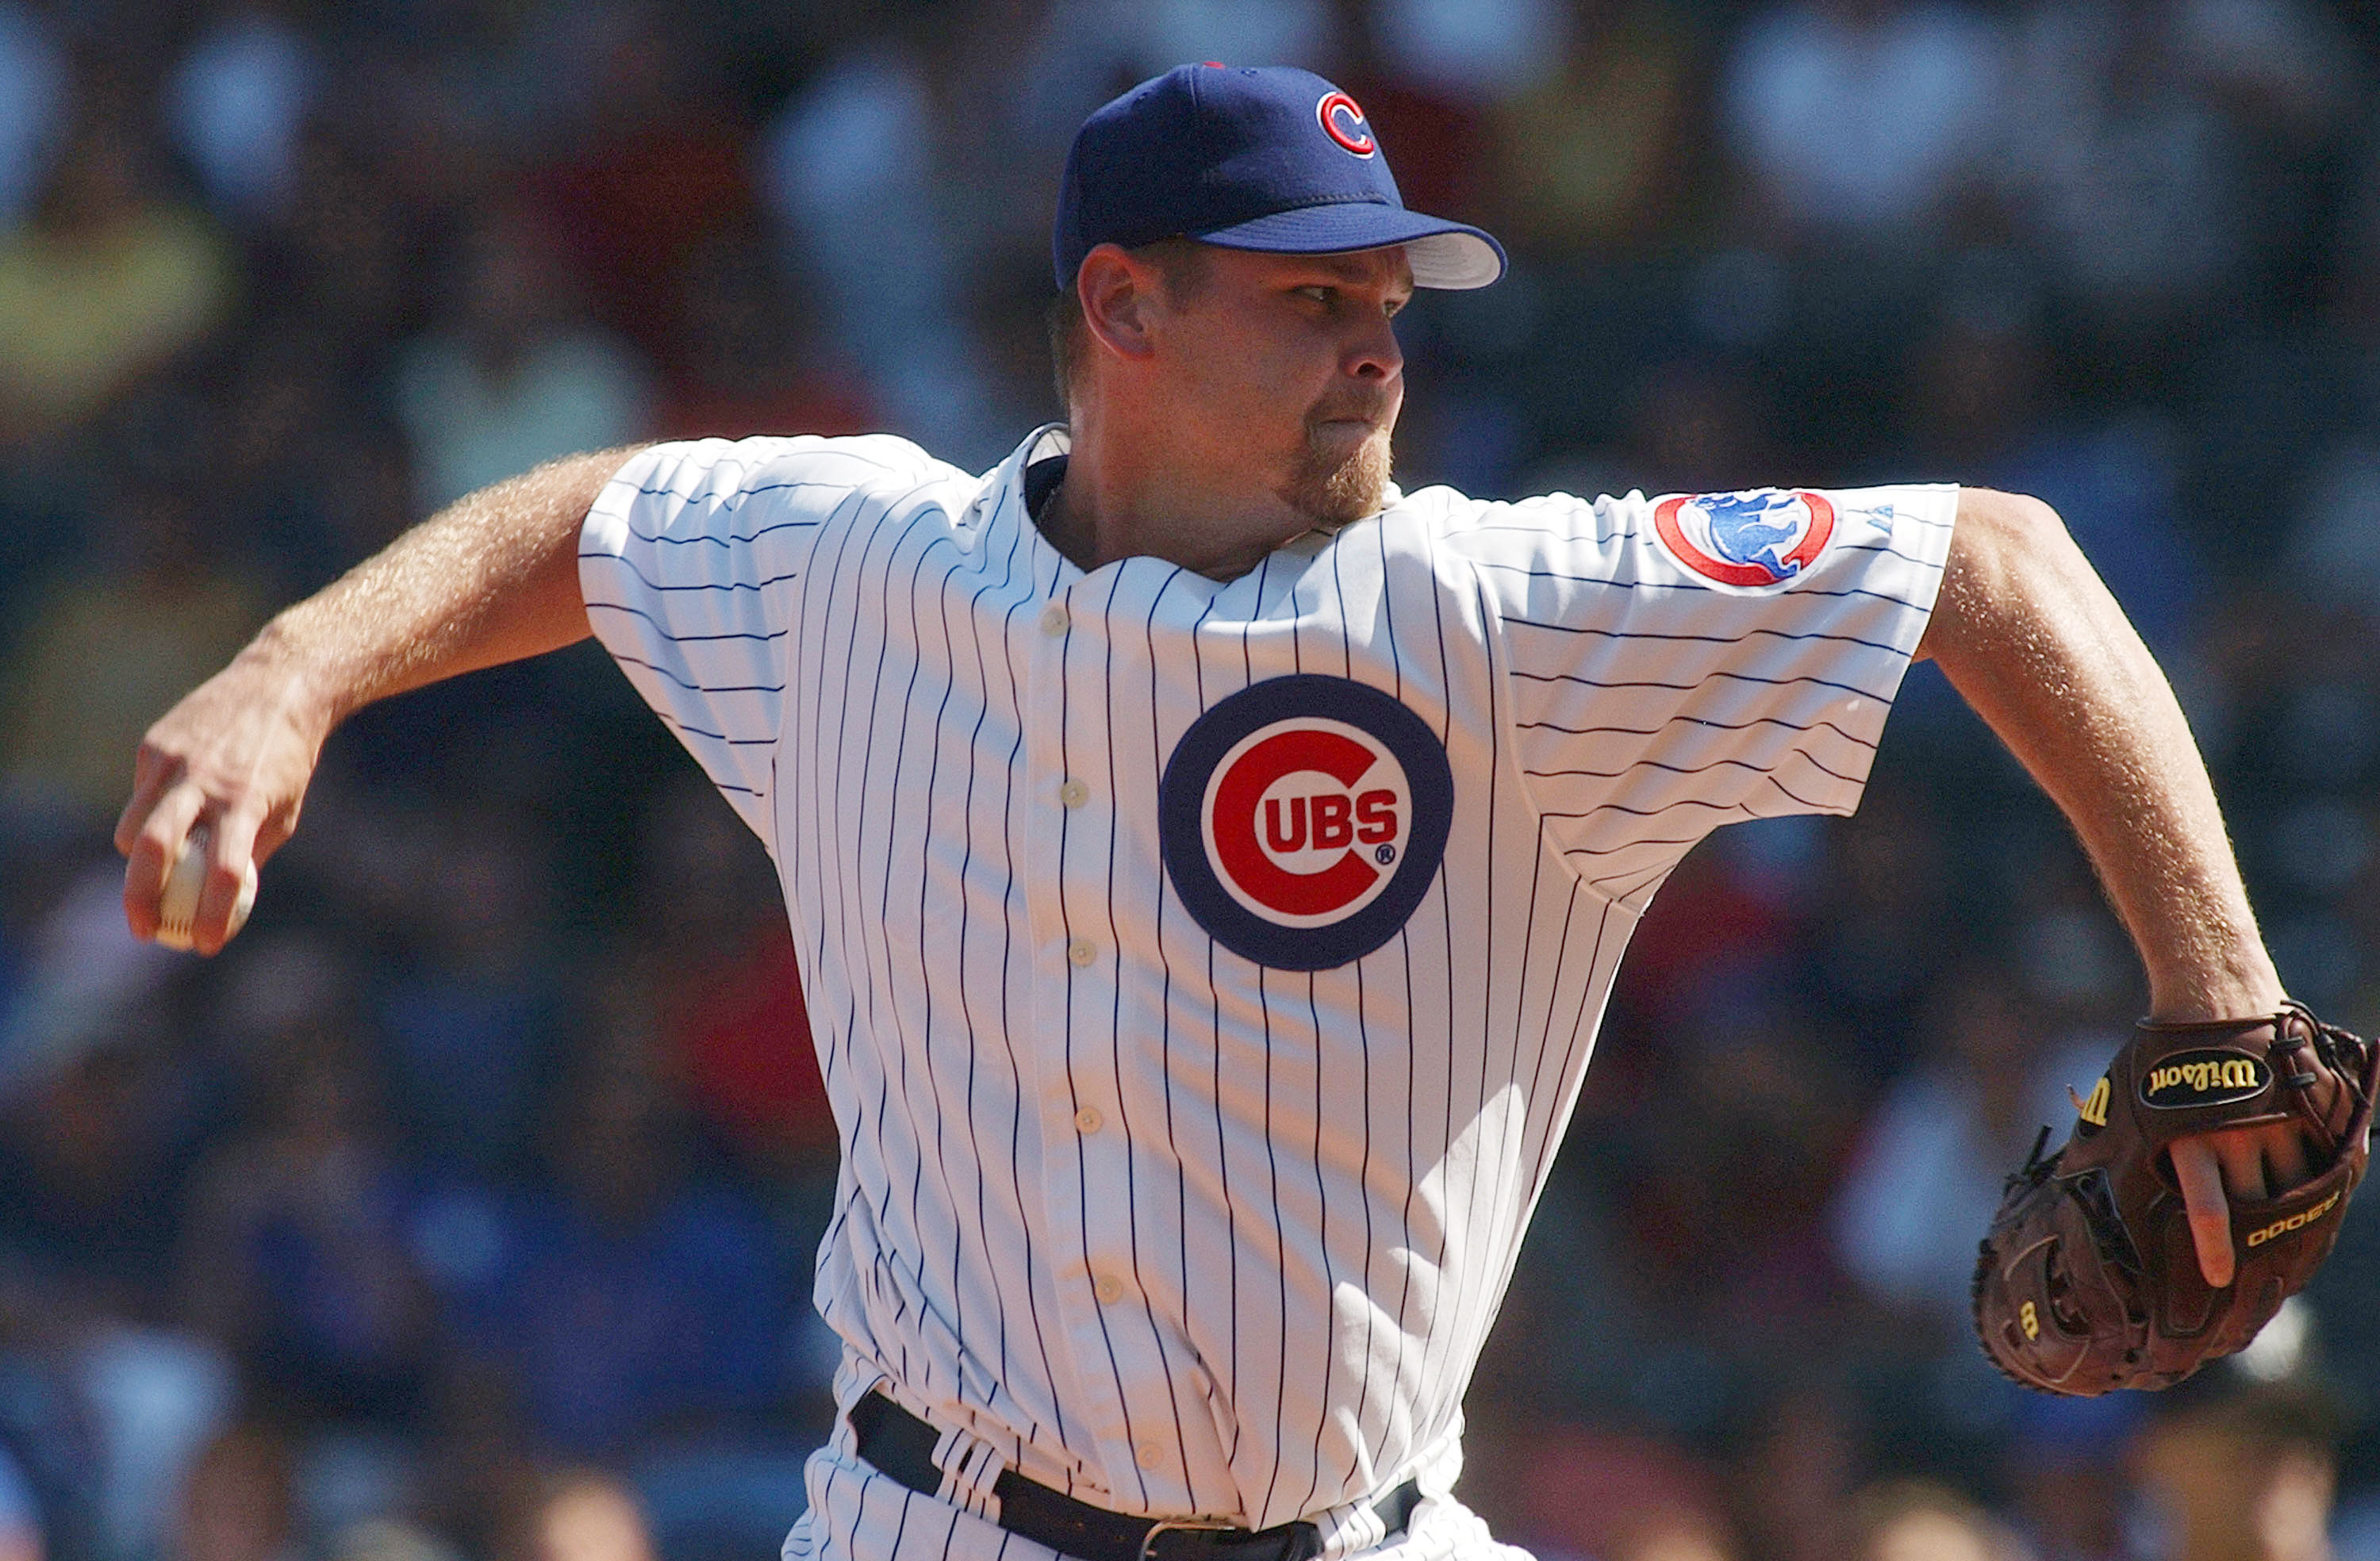 CHICAGO - SEPTEMBER 10: Kerry Wood #34 of the Chicago Cubs pitches against the Florida Marlins during game one of a doubleheader on September 10, 2004 at Wrigley Field in Chicago, Illinois. (Photo by Jonathan Daniel/Getty Images)